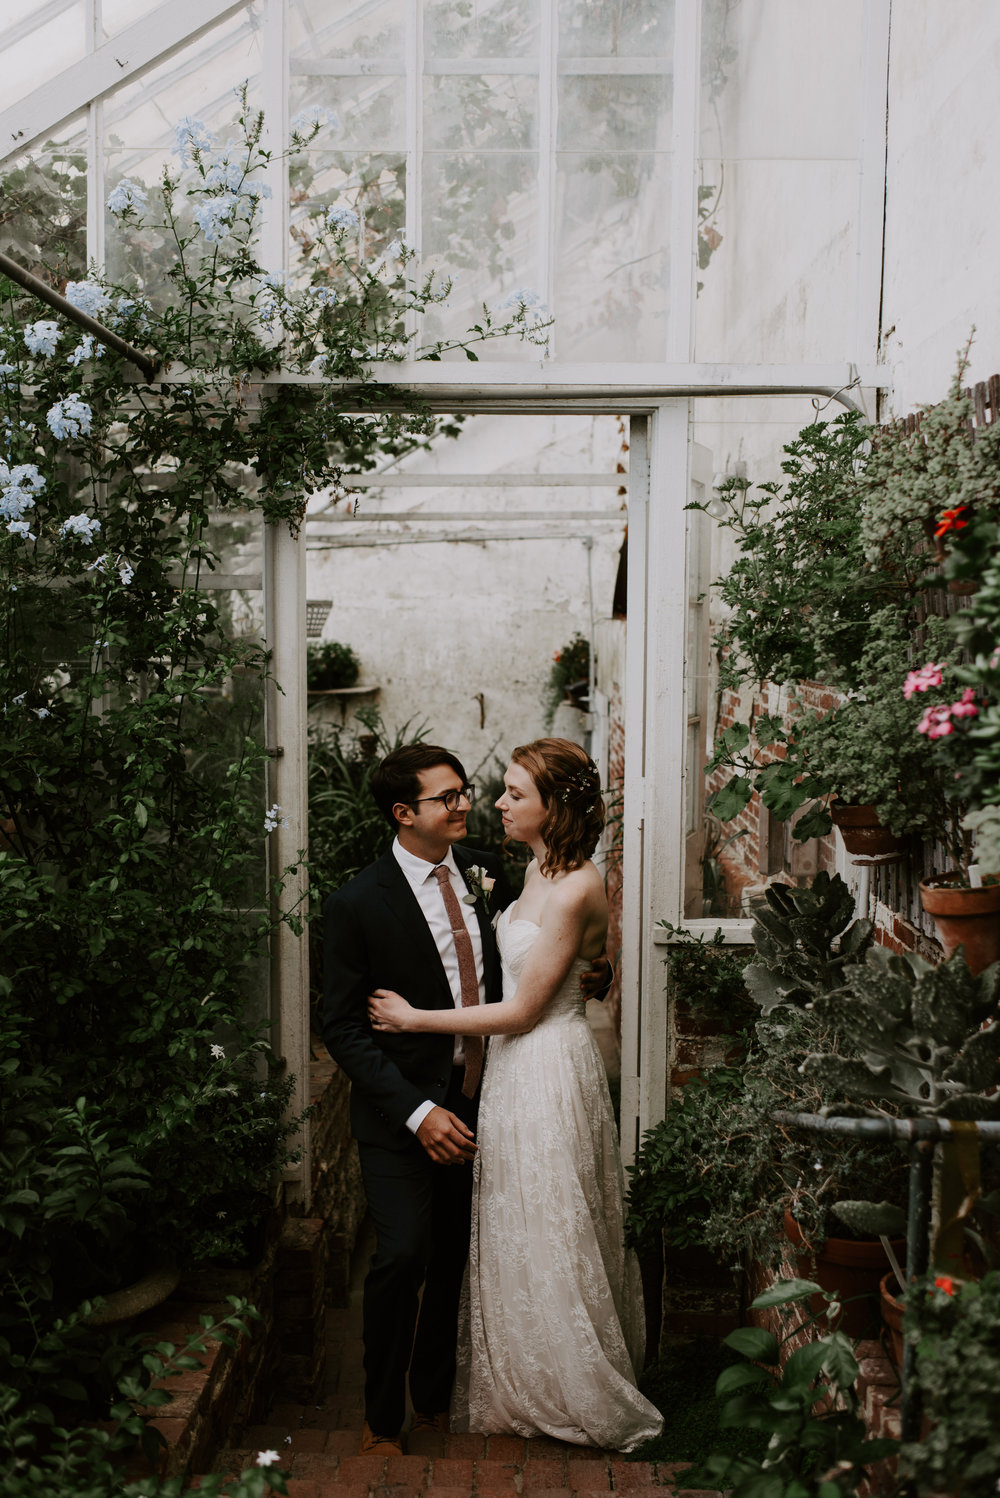 Theresa and Kyle's Romantic Green House Wedding At The Lyman Estate | Boston Wedding Photographer | Madeline Rose Photography Co.